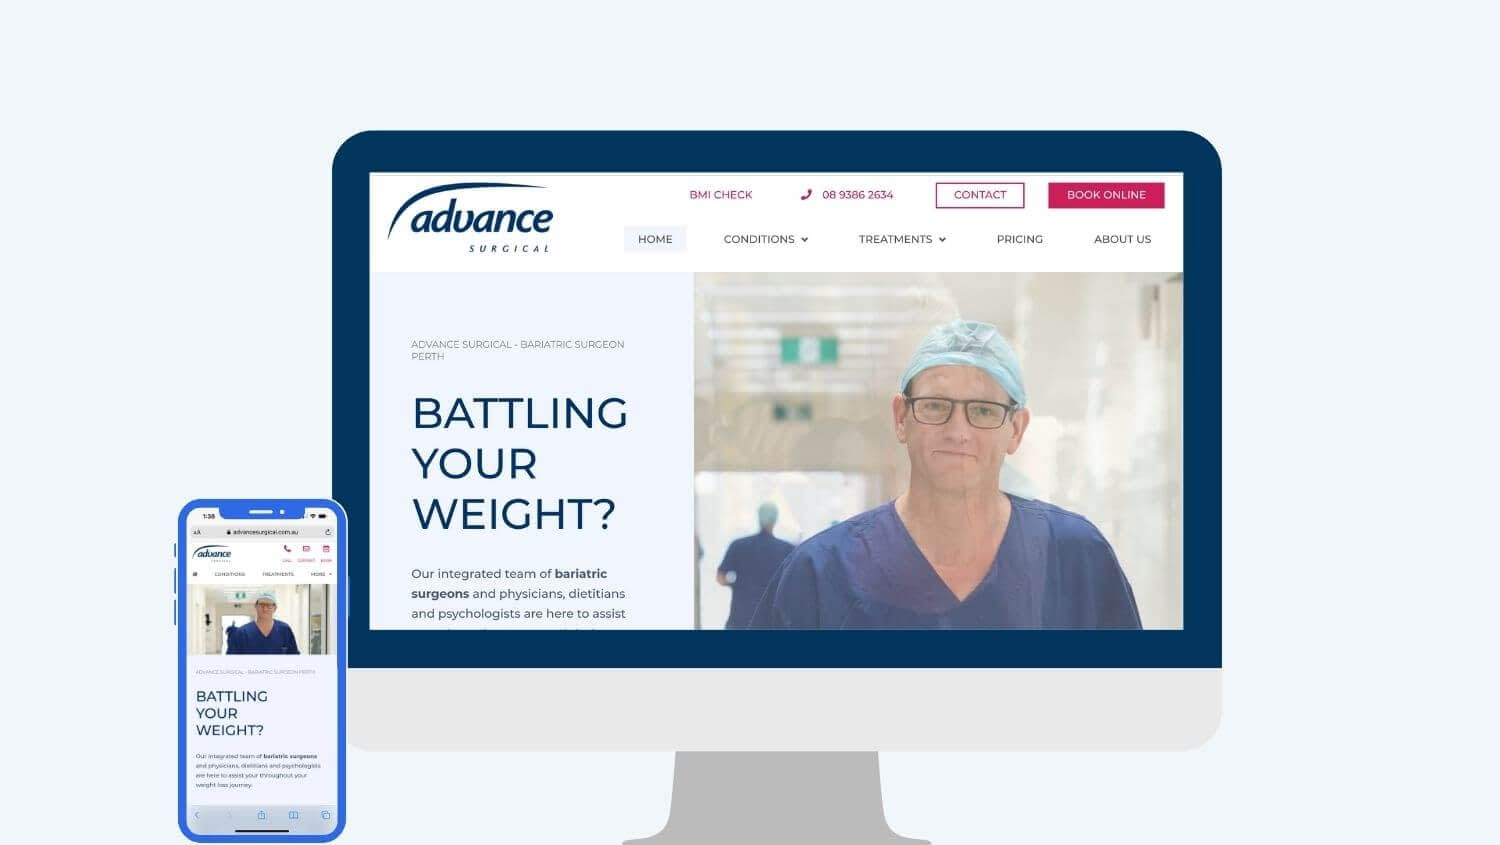 bariatric surgery marketing for Advance Surgical - Digital Practice